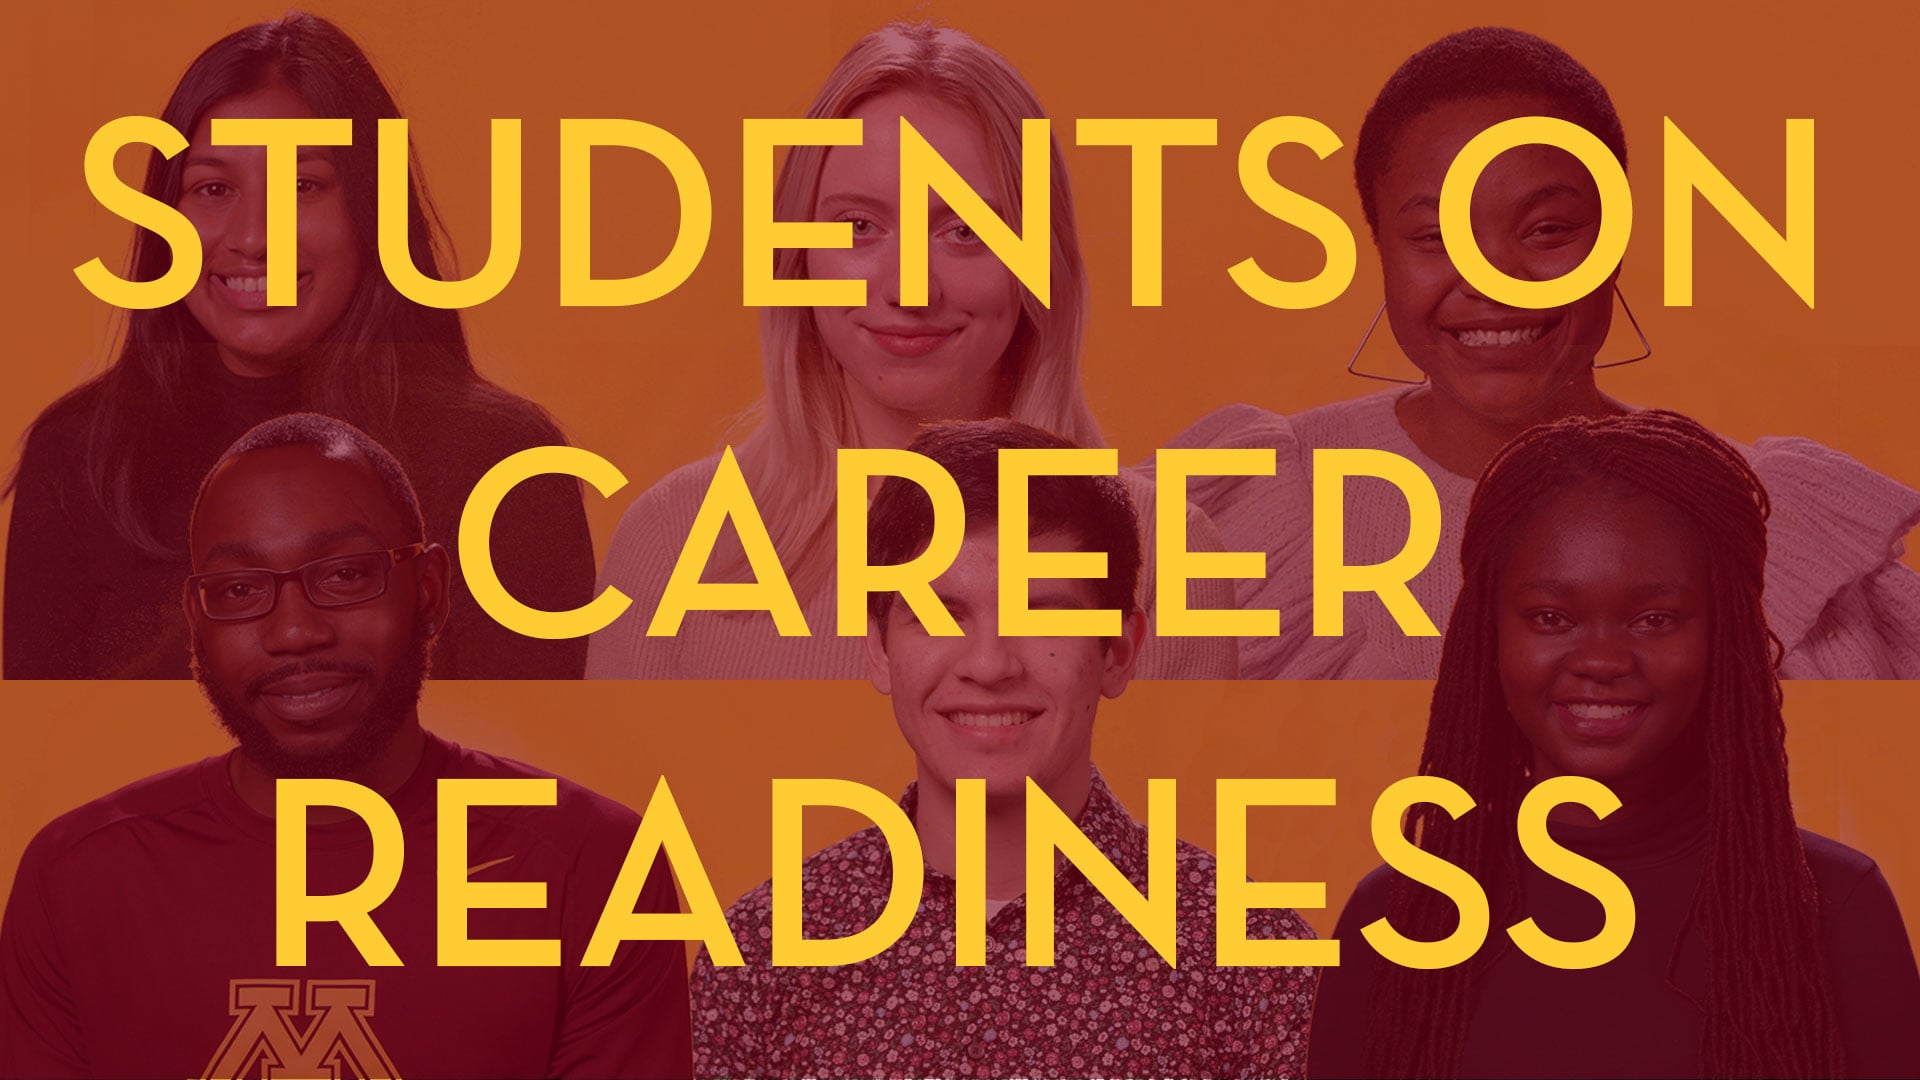 Students on Career Readiness